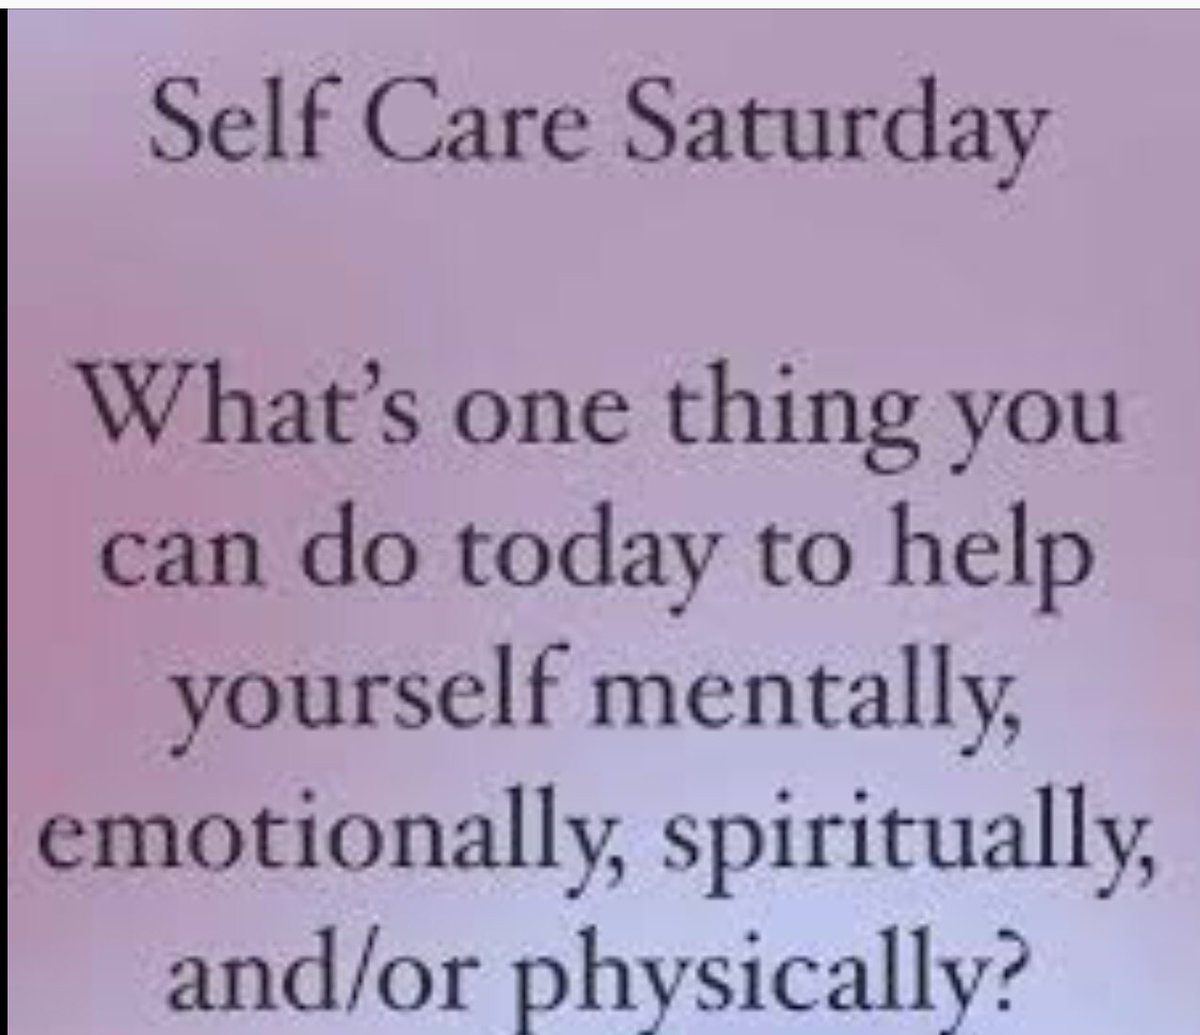 Do something this weekend to nurture and look after you. Self care is not selfish it's important. Share your self care tips to help others  #eastbourne #selfcare #mentalhealth #safespace #selflove #